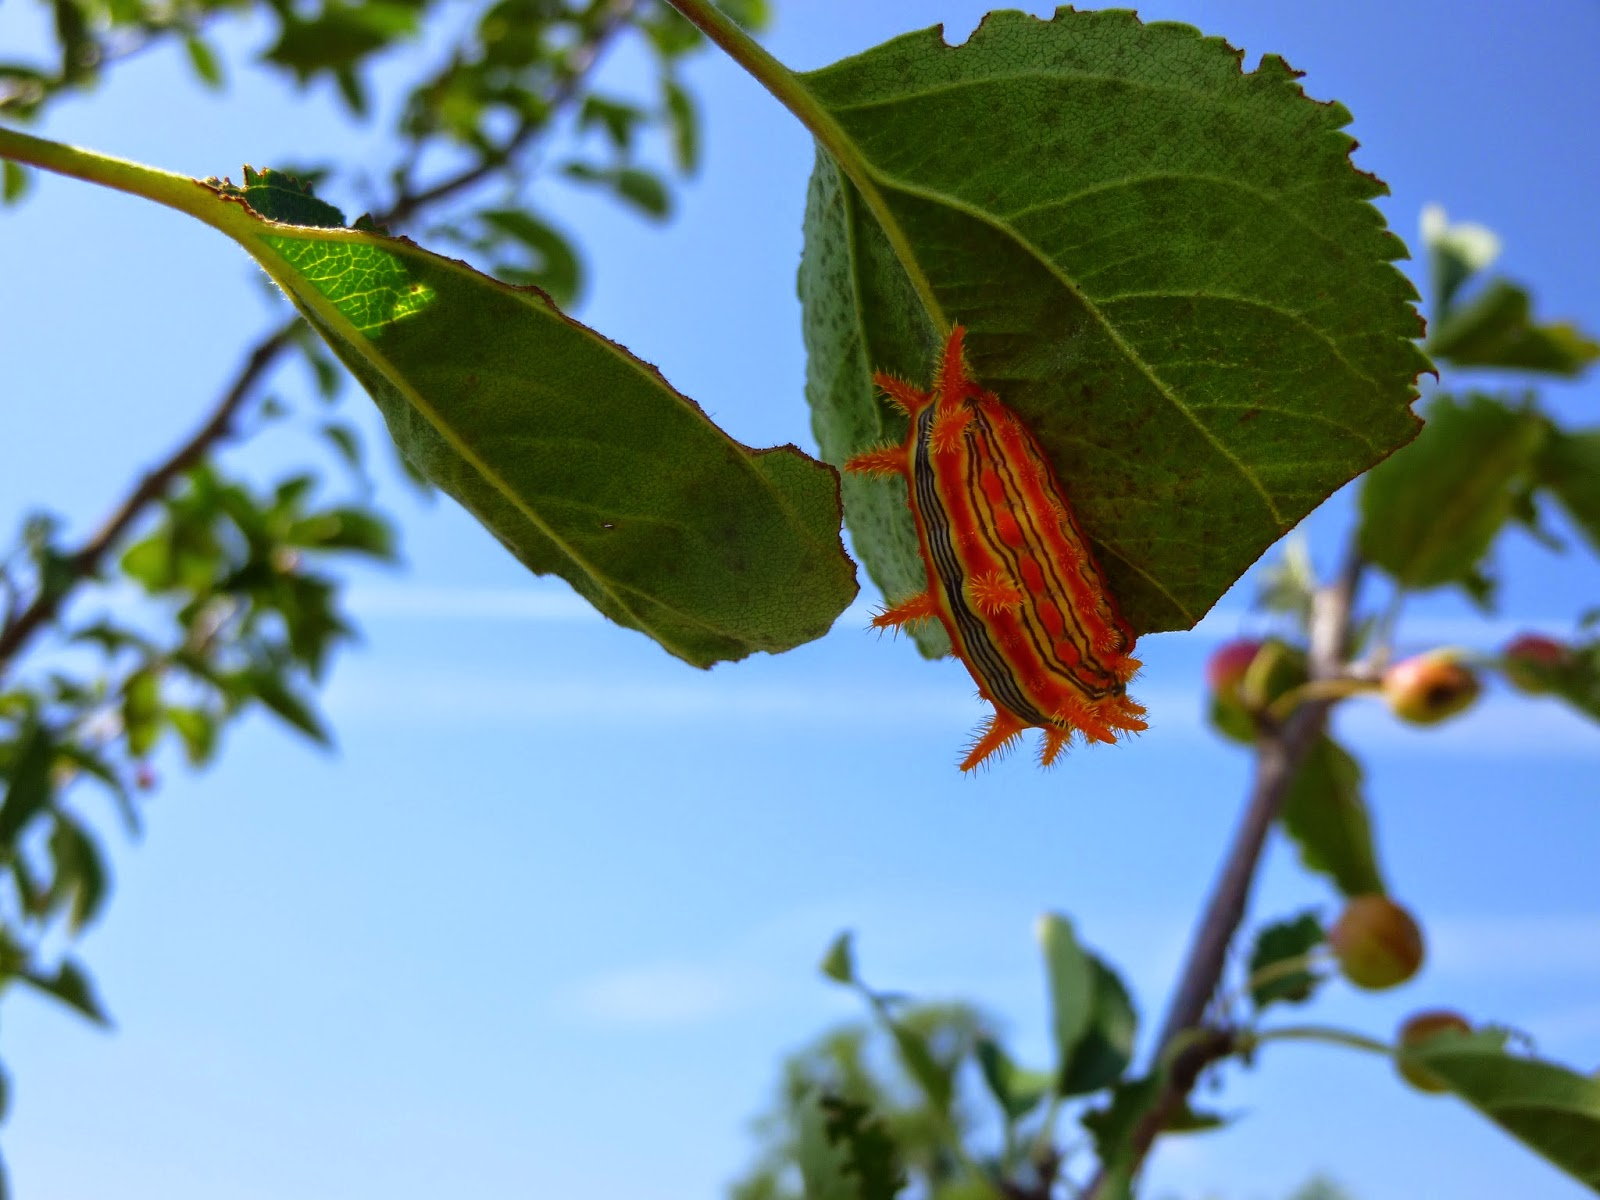 The attractive but toxic Stinging Rose (Parasa indetermina) caterpillar enjoying lunch in a crabapple tree